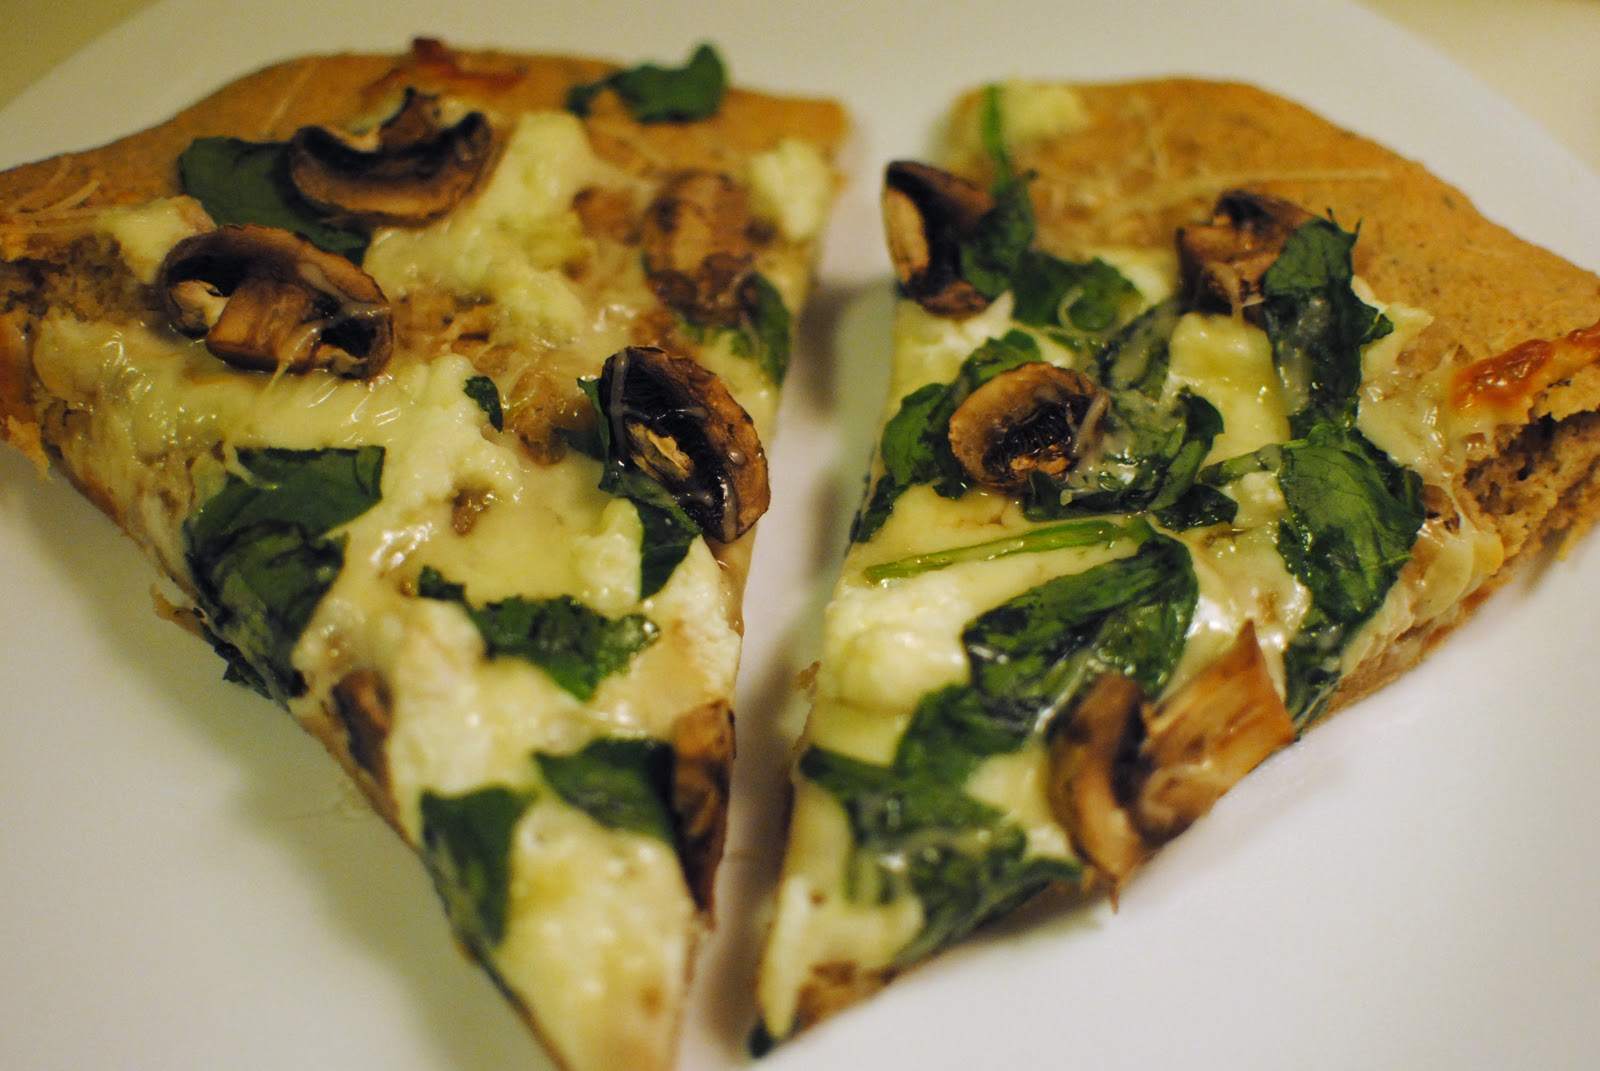 Garlic & Spinach White Cheese Pizza - Feathers in Our Nest